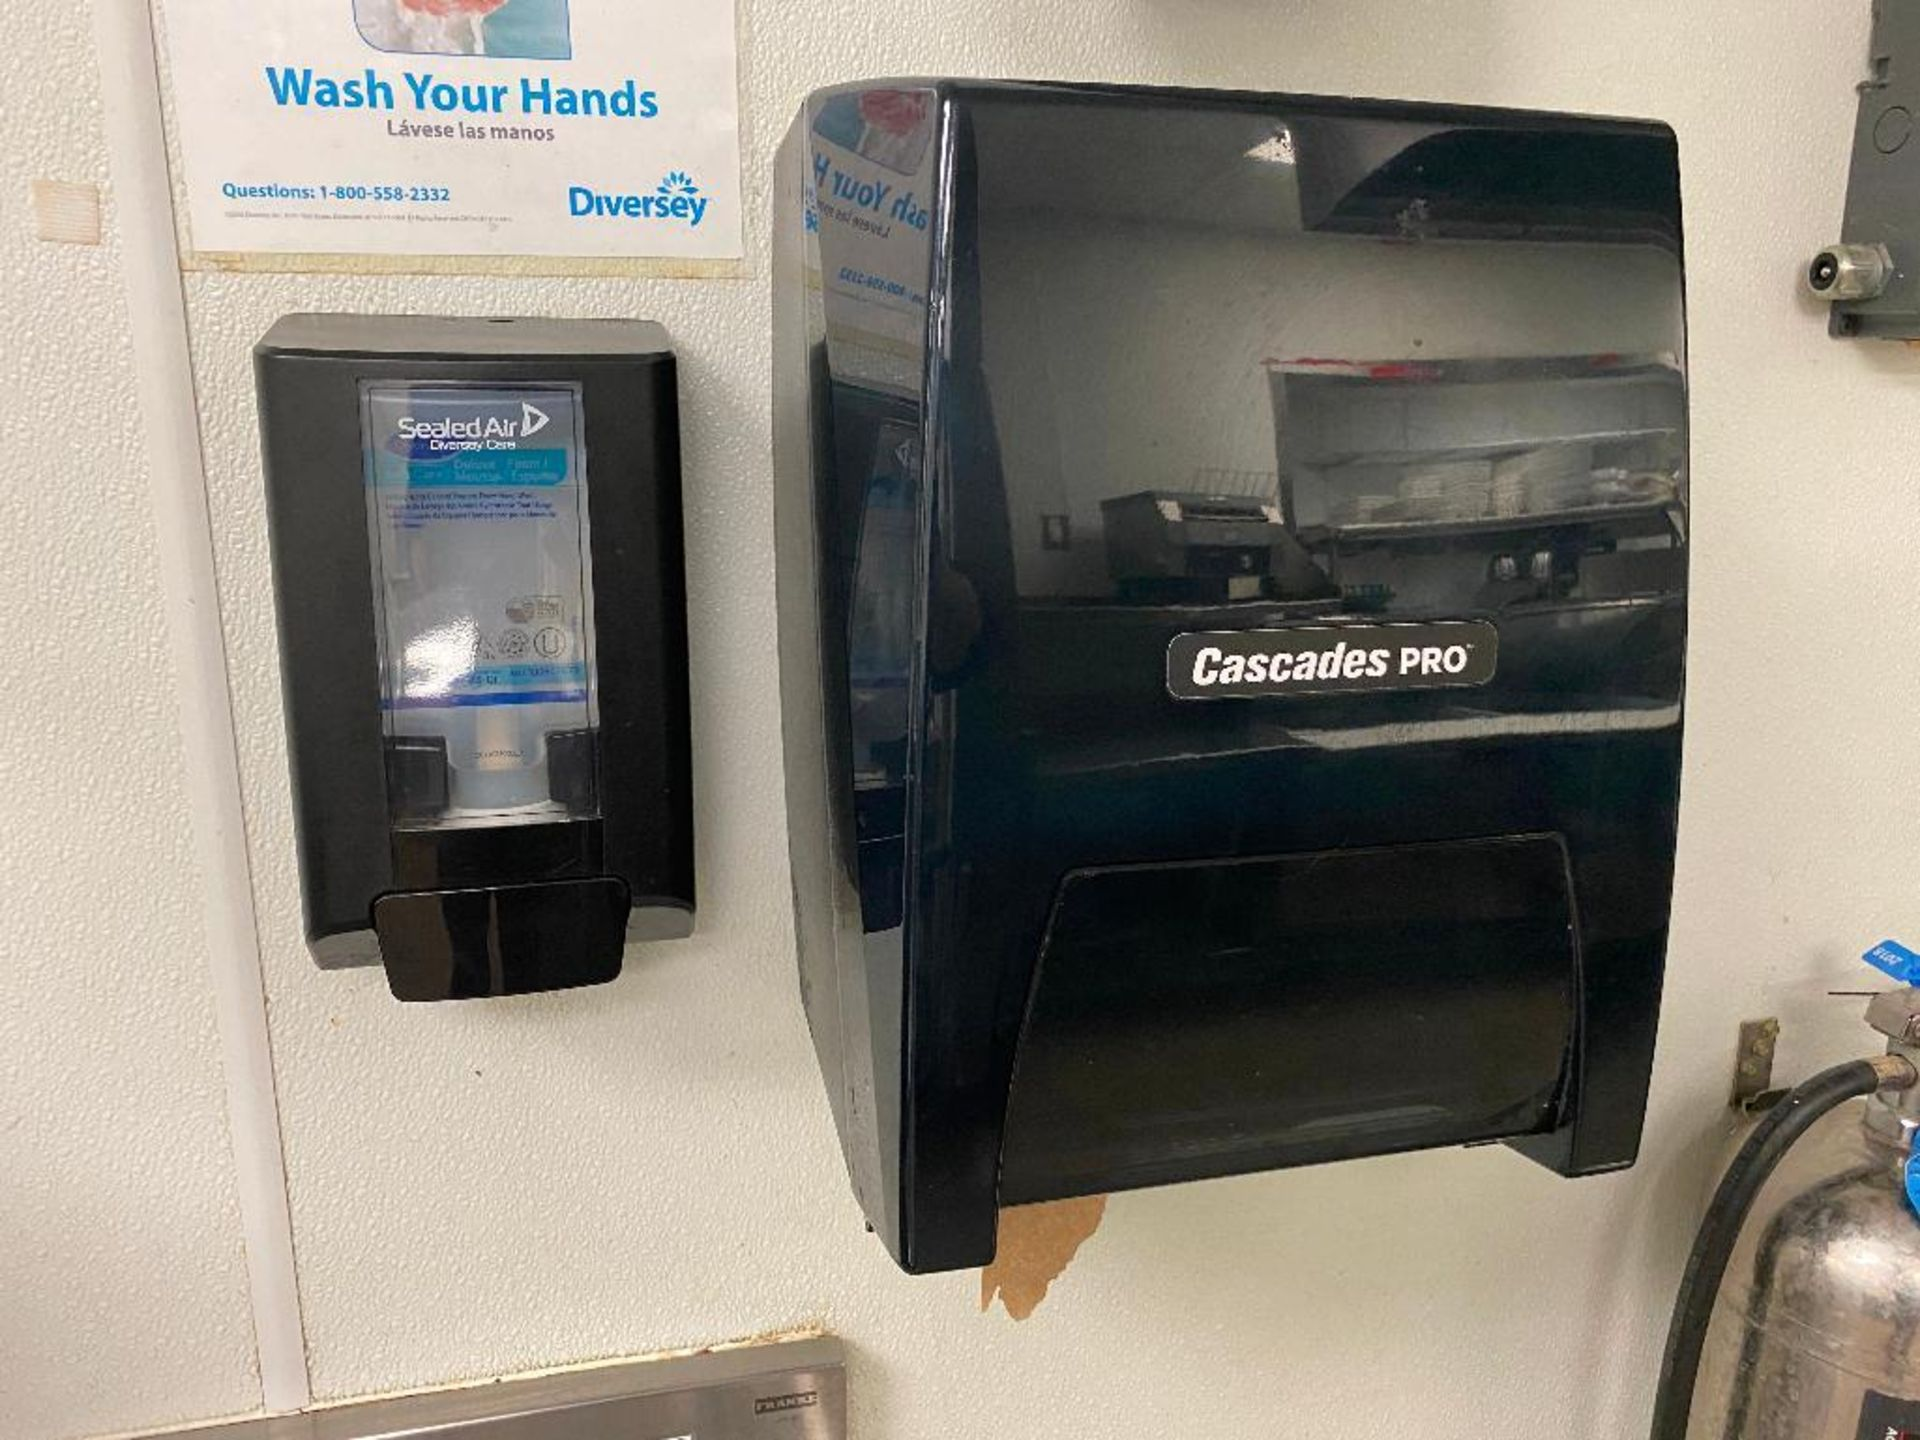 (3) CASCADES PRO PAPER TOWEL DISPENSERS - NOTE: REQUIRES REMOVAL FROM WALL, PLEASE INSPECT - Image 2 of 4